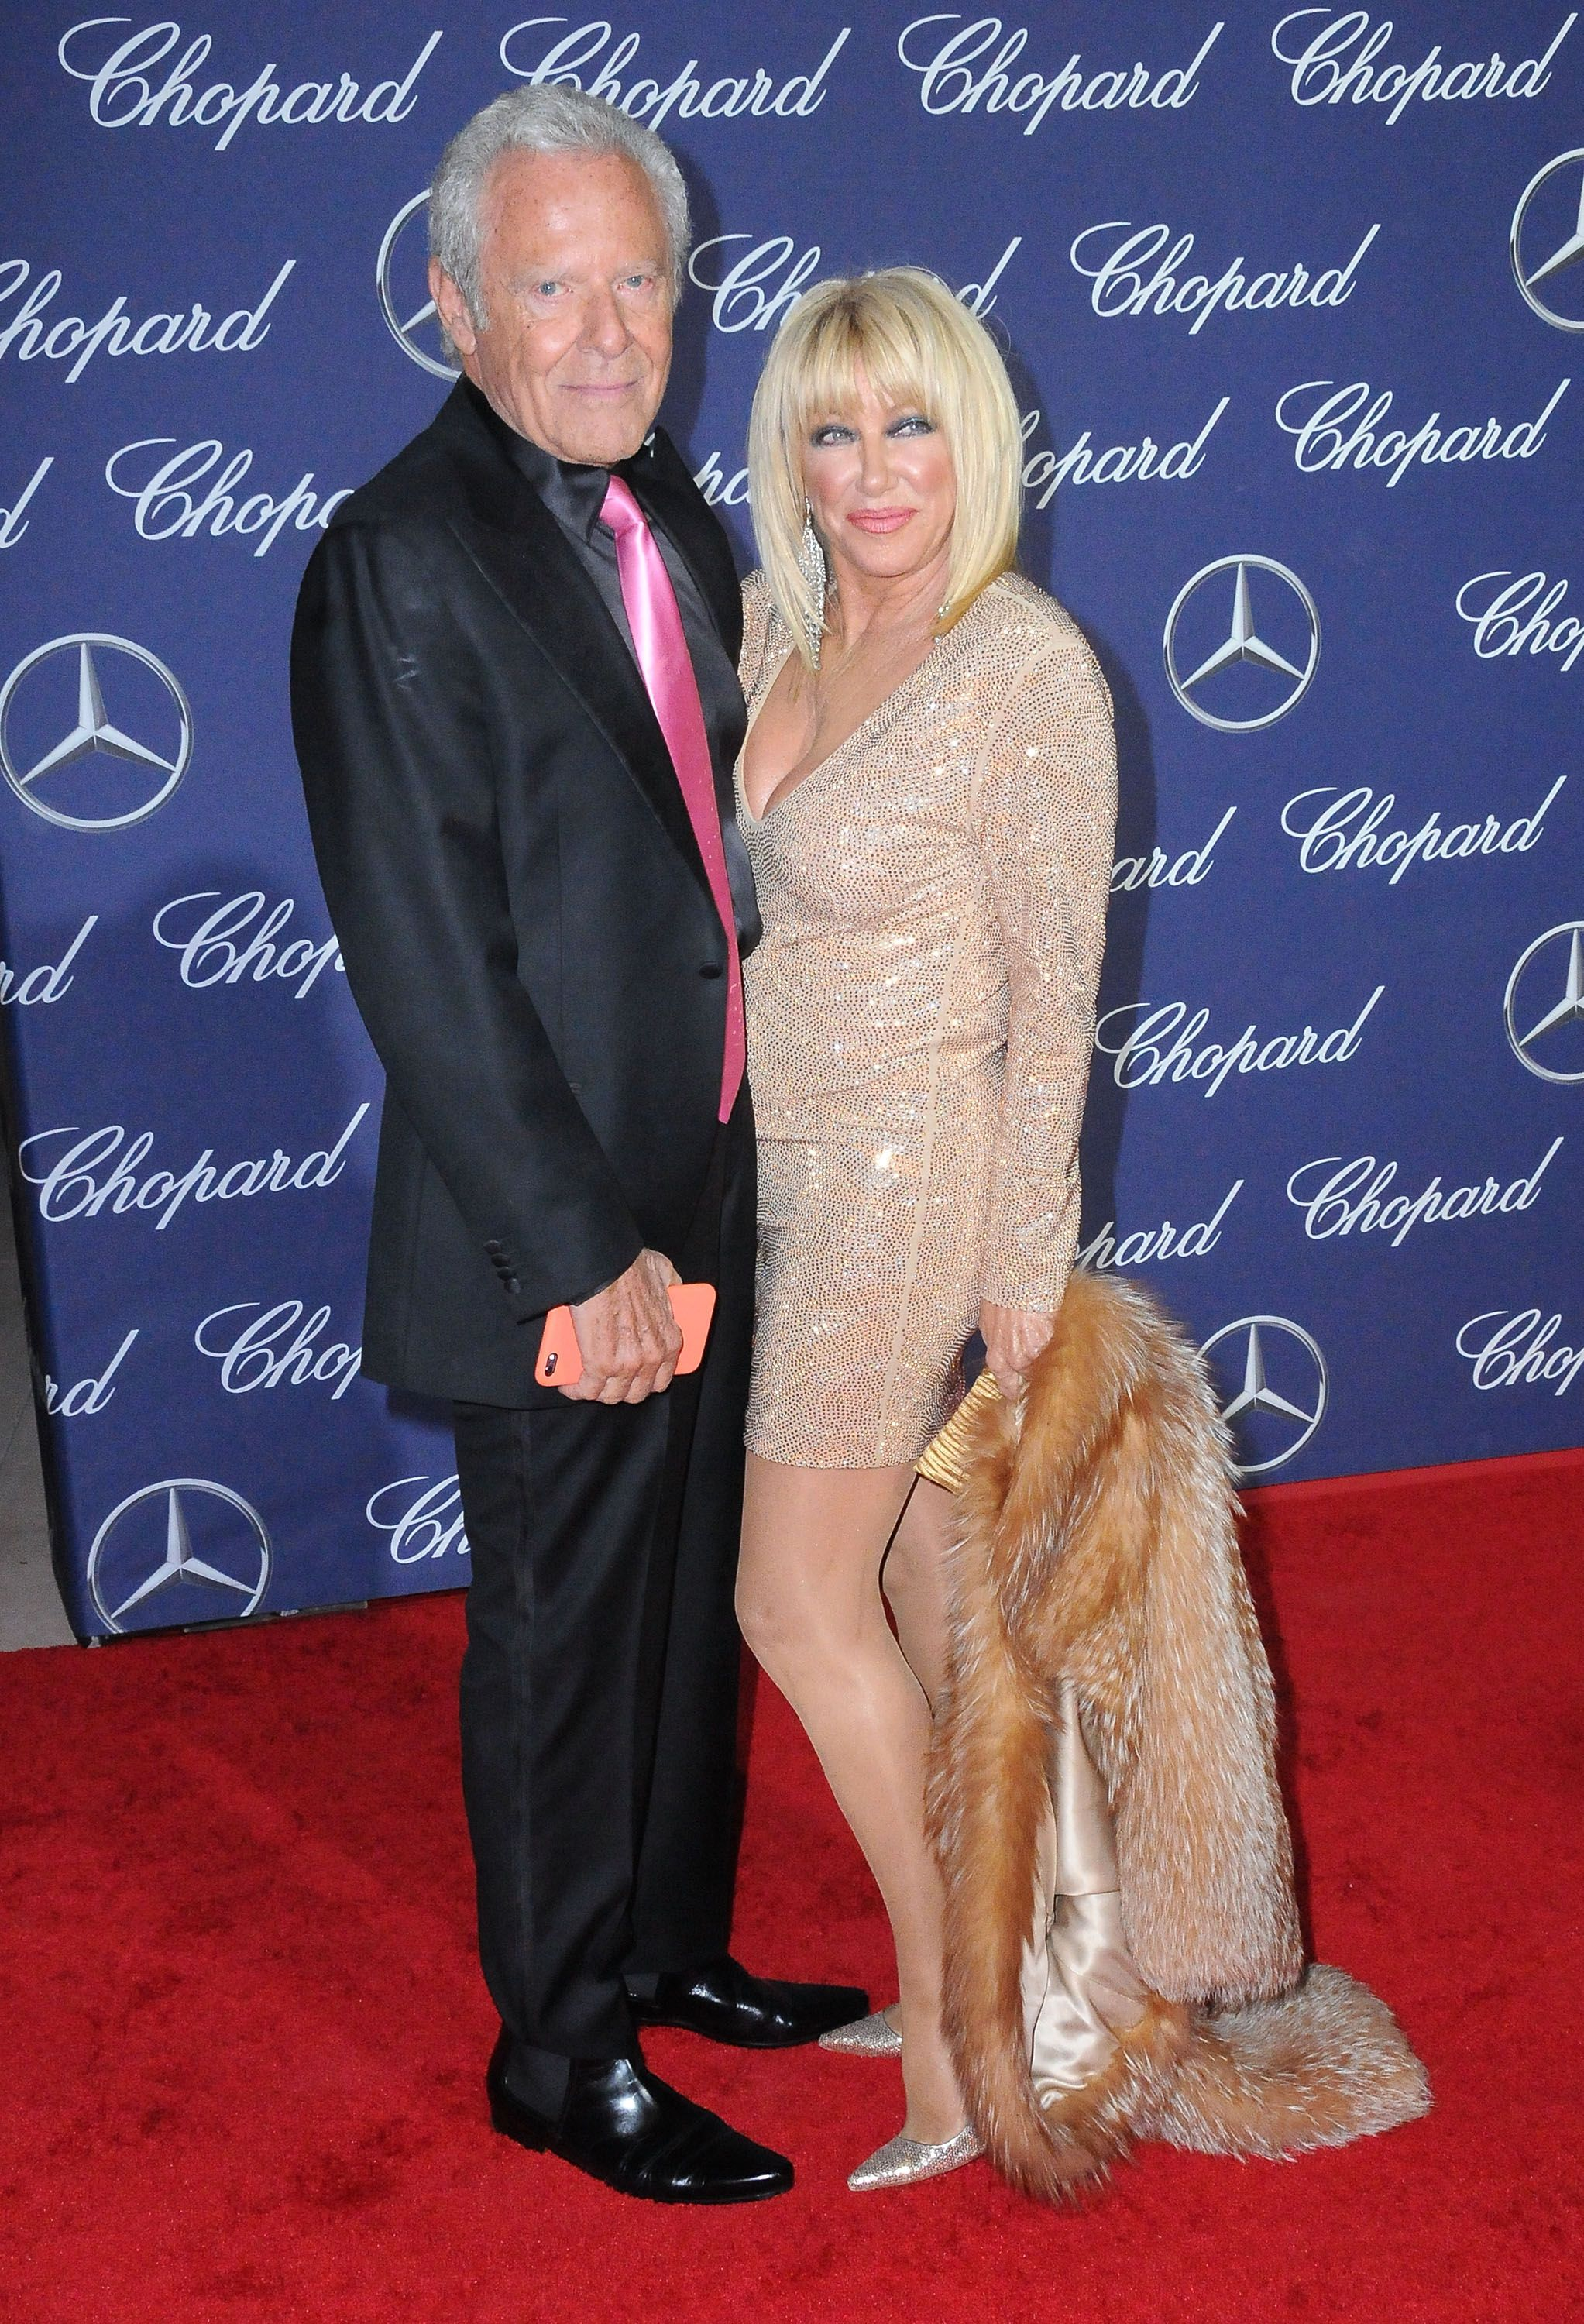 Suzanne Somers and Alan Hamel during the 28th Annual Palm Springs International Film Festival Film Awards Gala. | Source: Getty Images